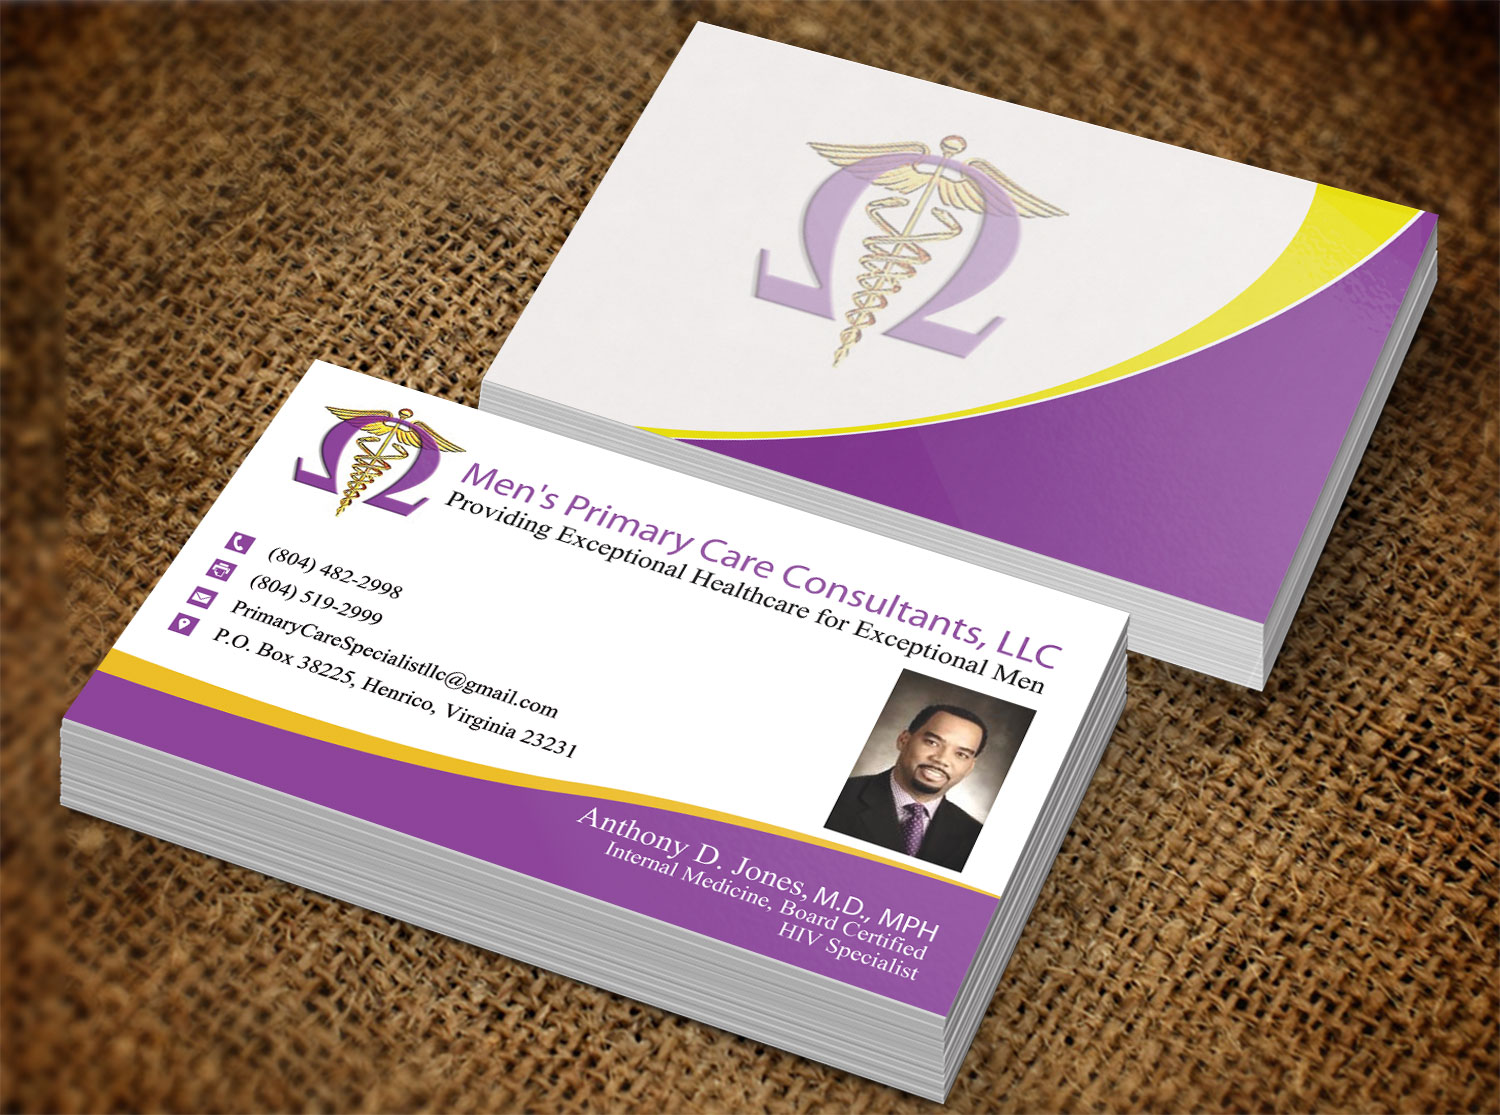 Serious modern healthcare business card design for a company by business card design by pawana designs for this project design 6996654 colourmoves